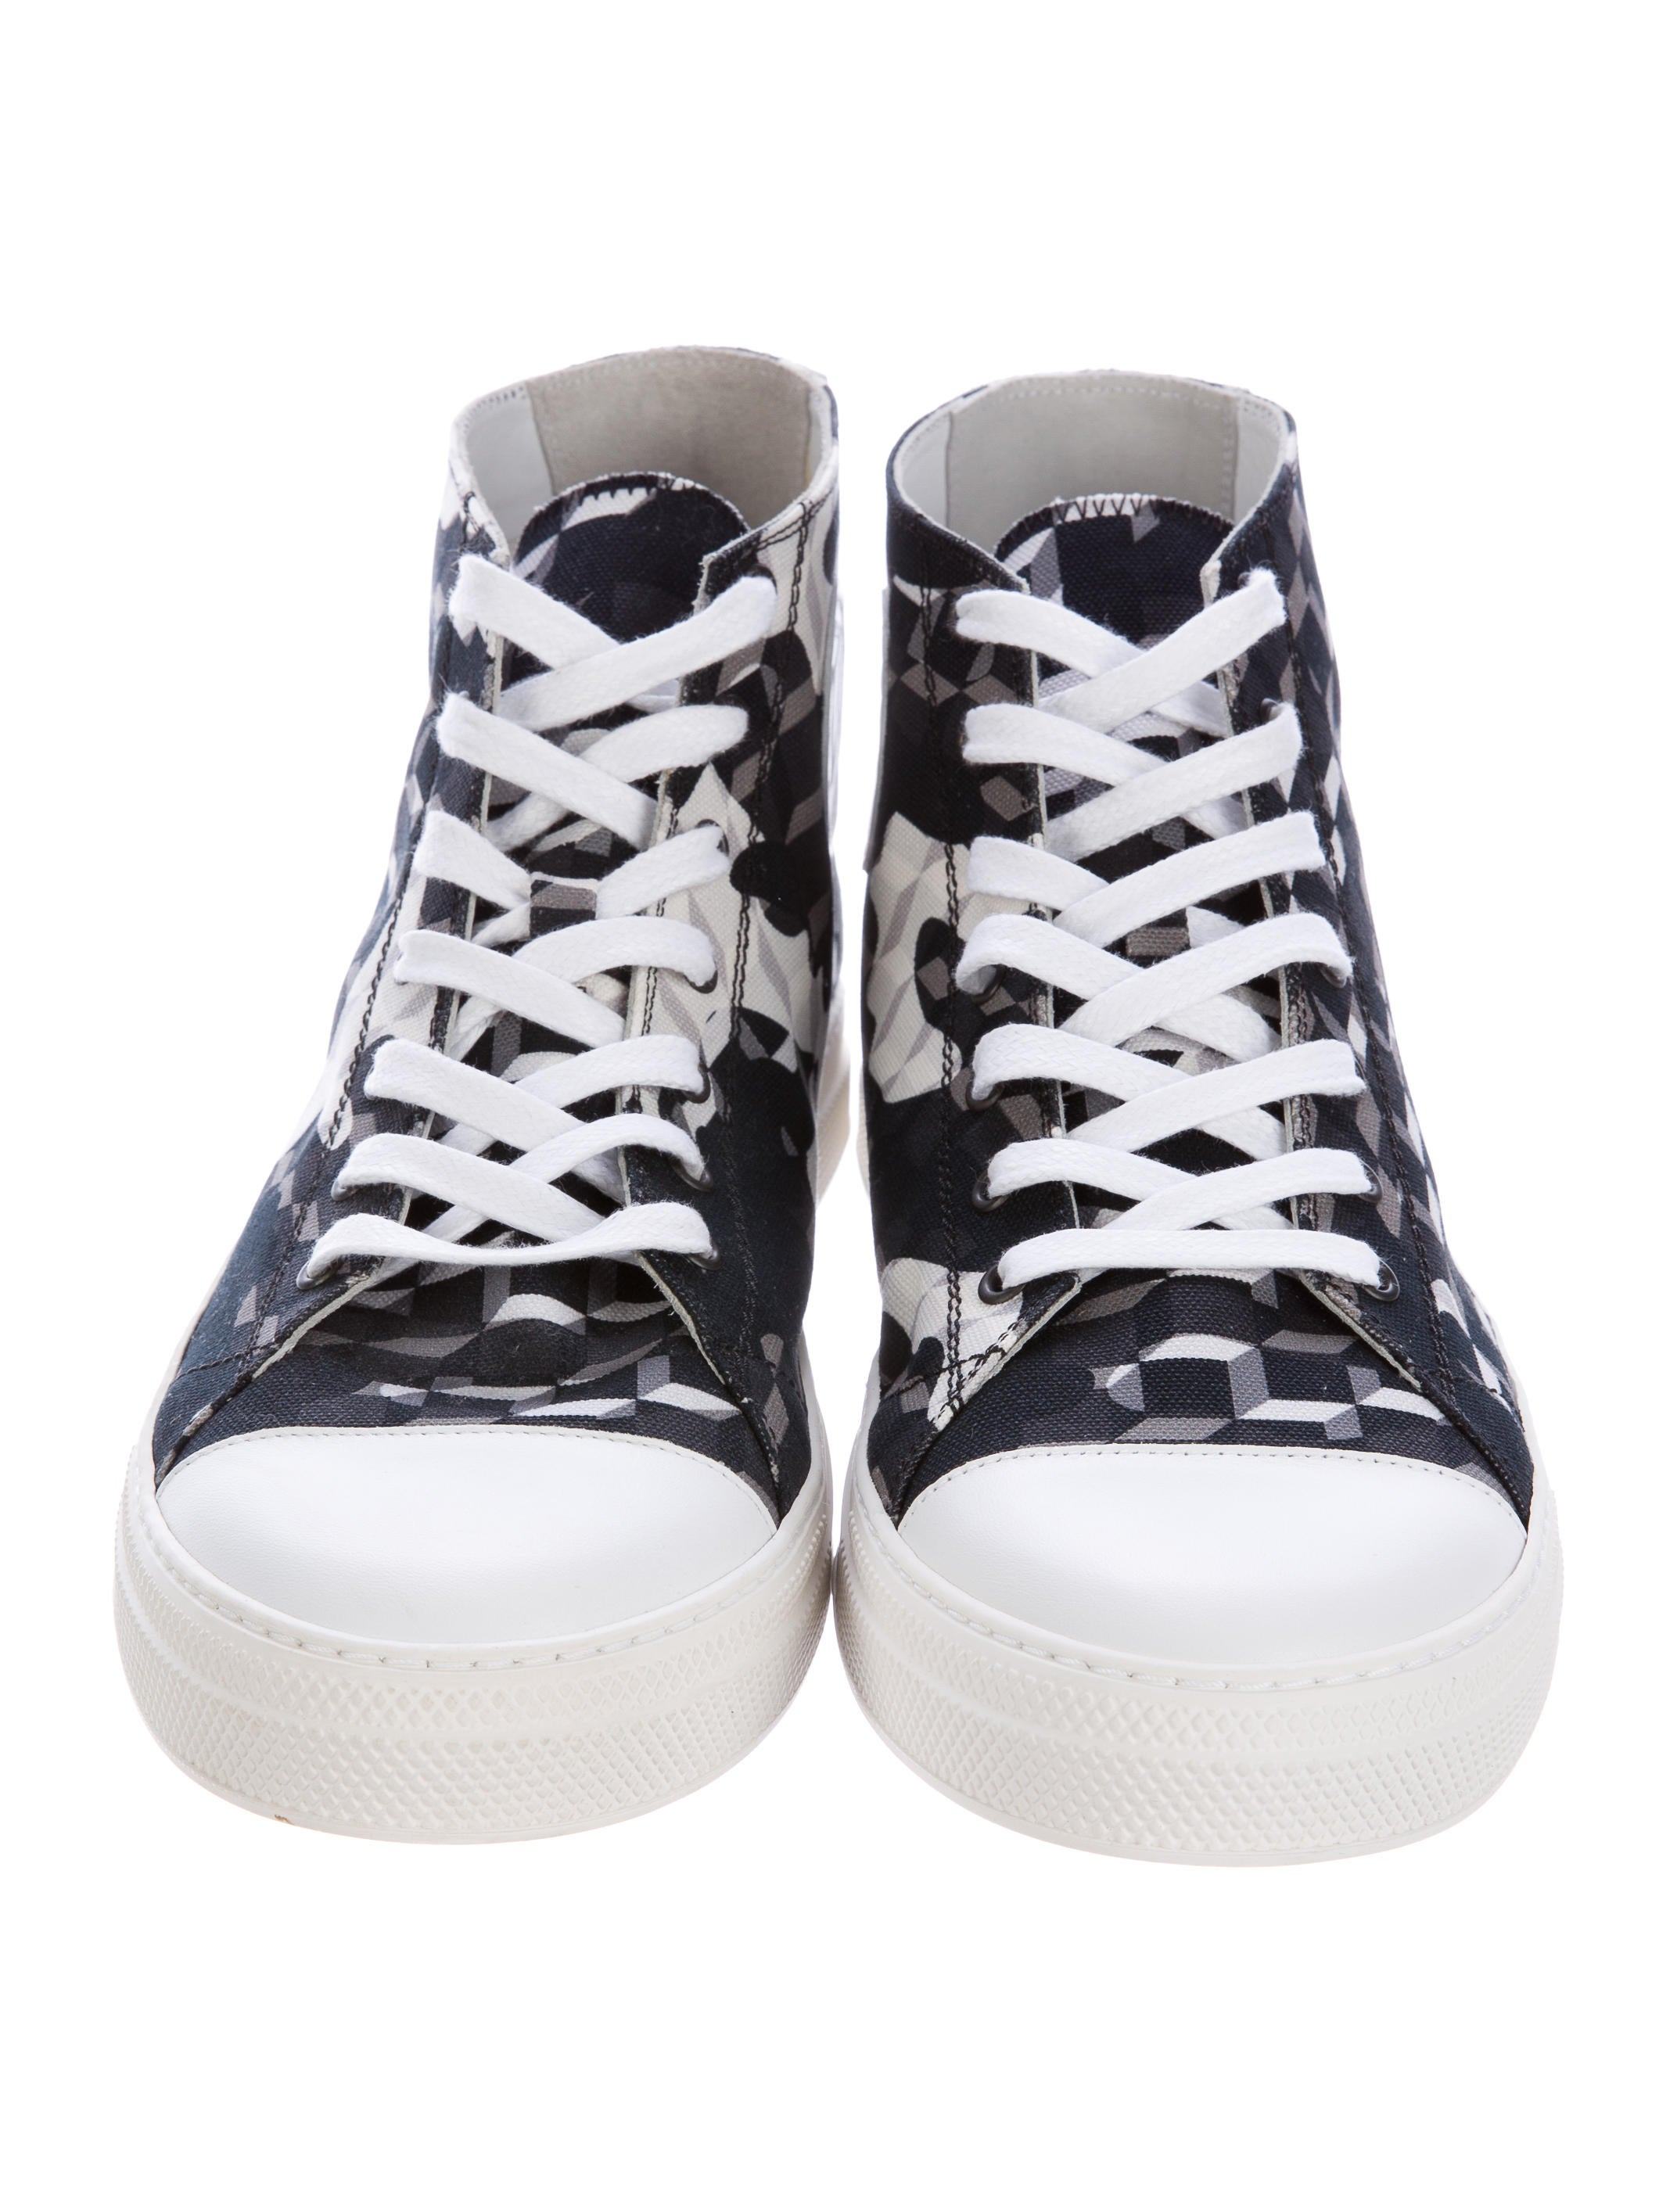 pierre hardy 3 d print high top sneakers w tags shoes pie23900 the realreal. Black Bedroom Furniture Sets. Home Design Ideas